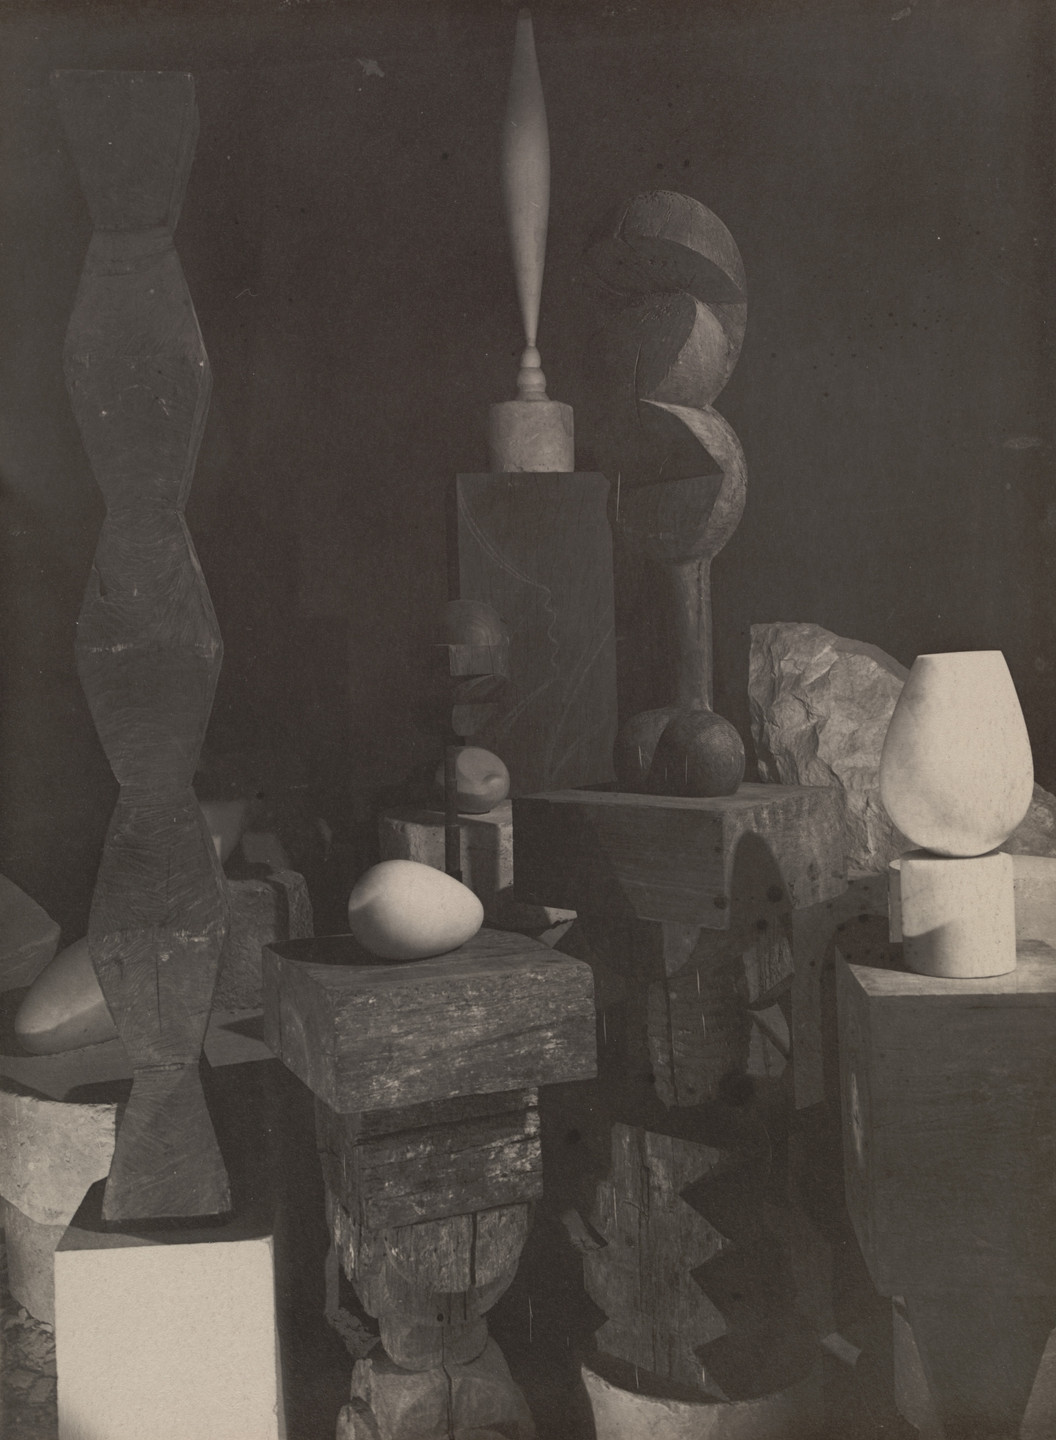 Constantin Brâncuși. Untitled (View of the Studio with Endless Column, Beginning of the World, Adam and Eve, Bird in Space, and Torso of a Young Girl). 1922